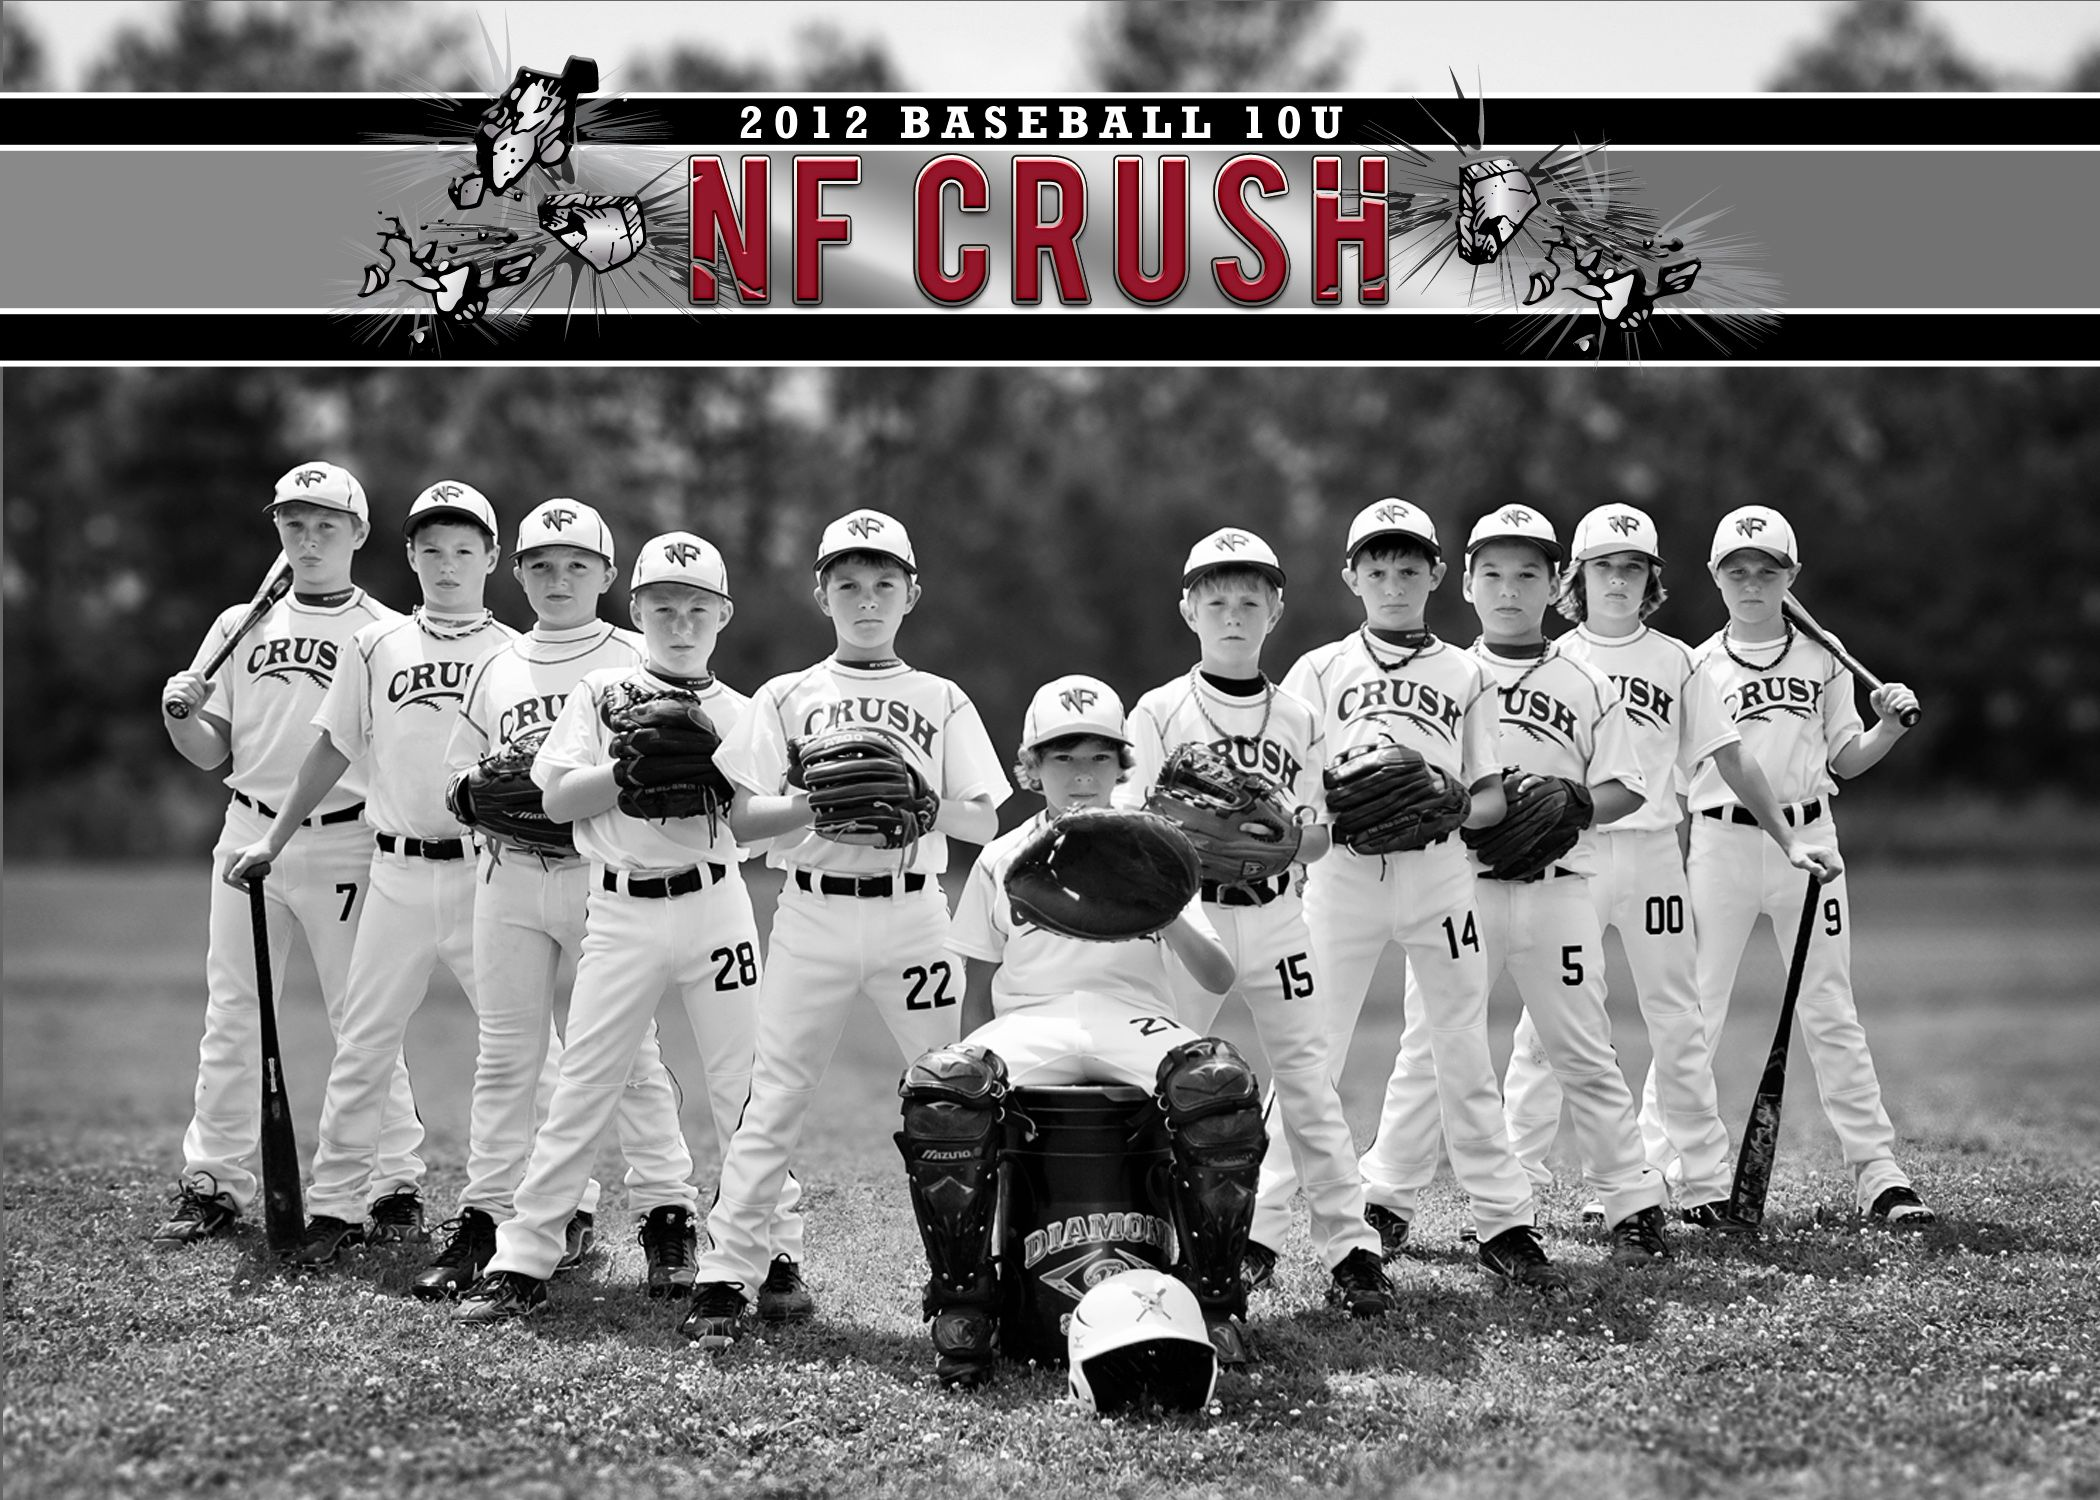 Team picture... Cute idea for team photo of a baseball ...